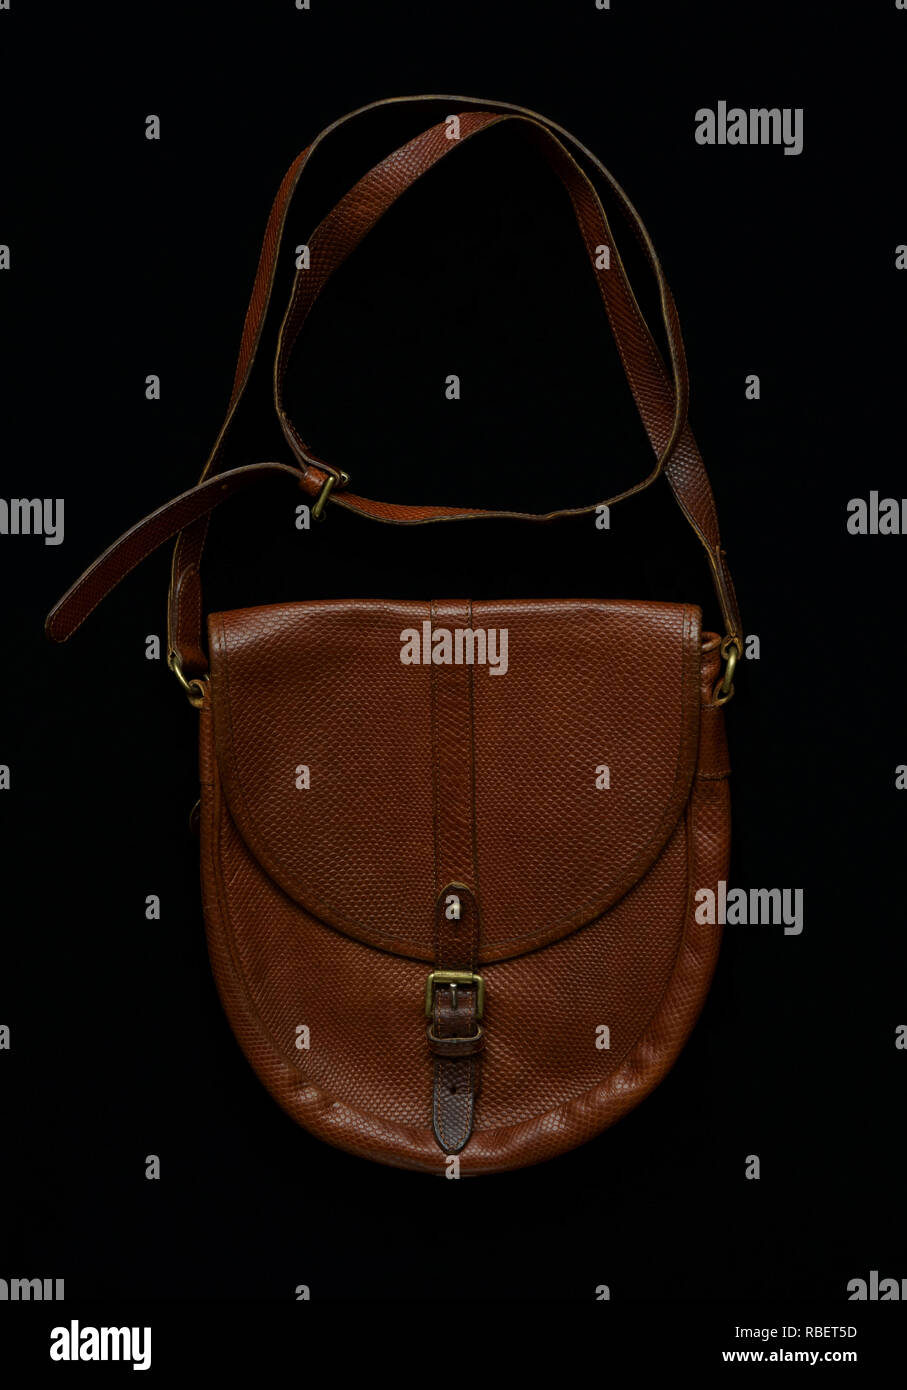 5fd0ab8c5717 Mulberry Bag Stock Photos   Mulberry Bag Stock Images - Alamy